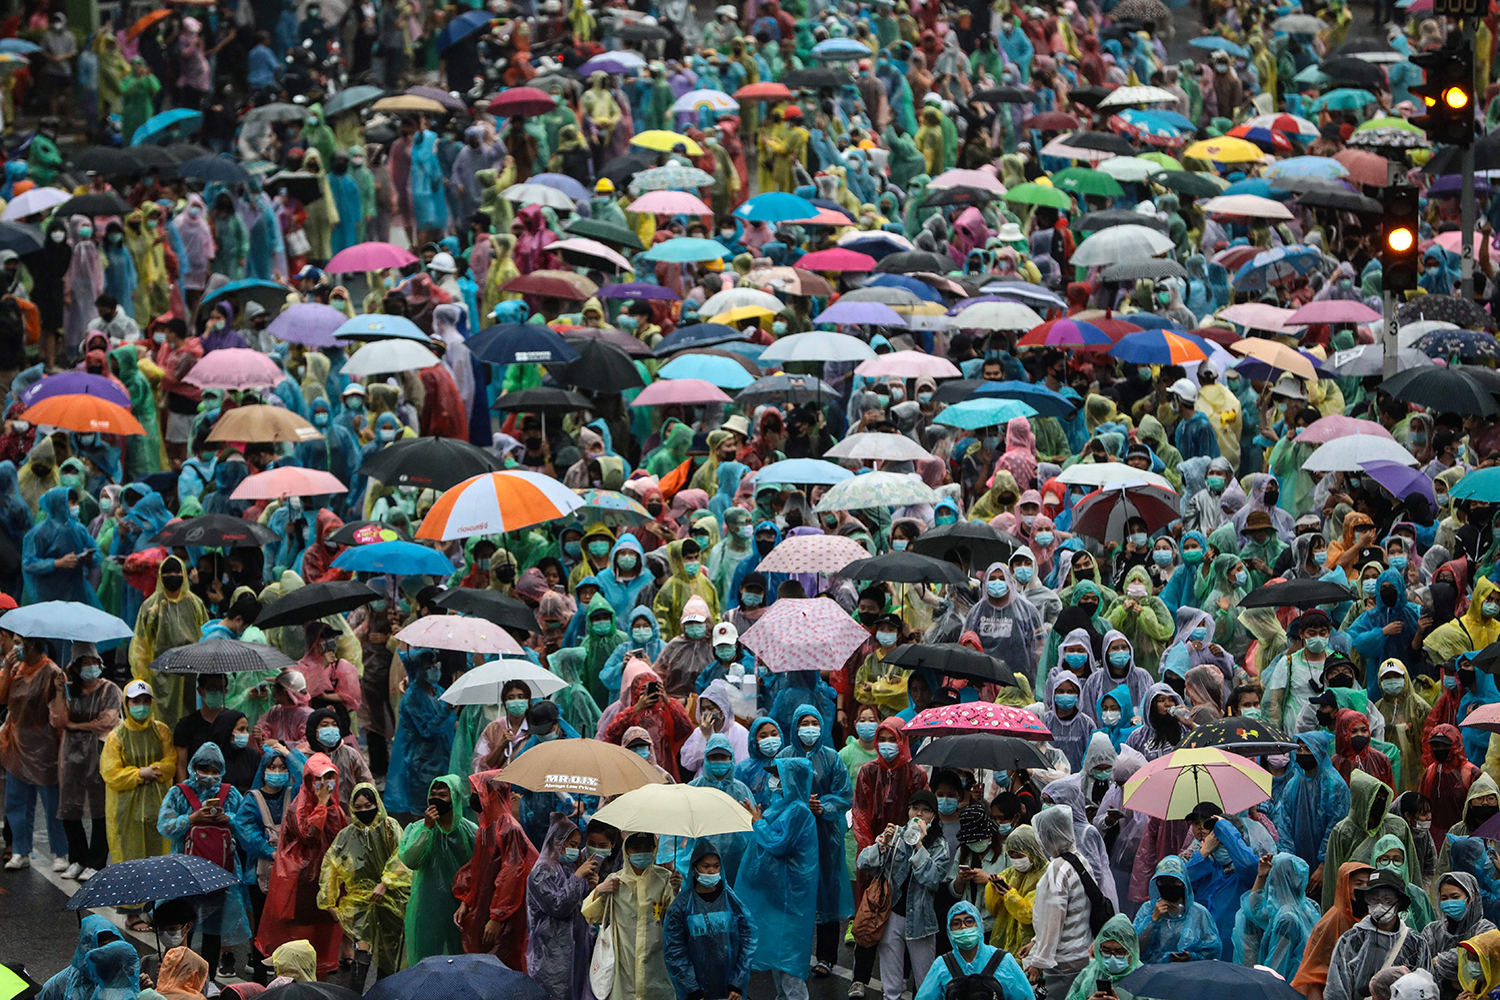 Pro-democracy protesters shelter from the rain during an anti-government rally at Victory Monument in Bangkok on Oct. 18. JACK TAYLOR/AFP via Getty Images